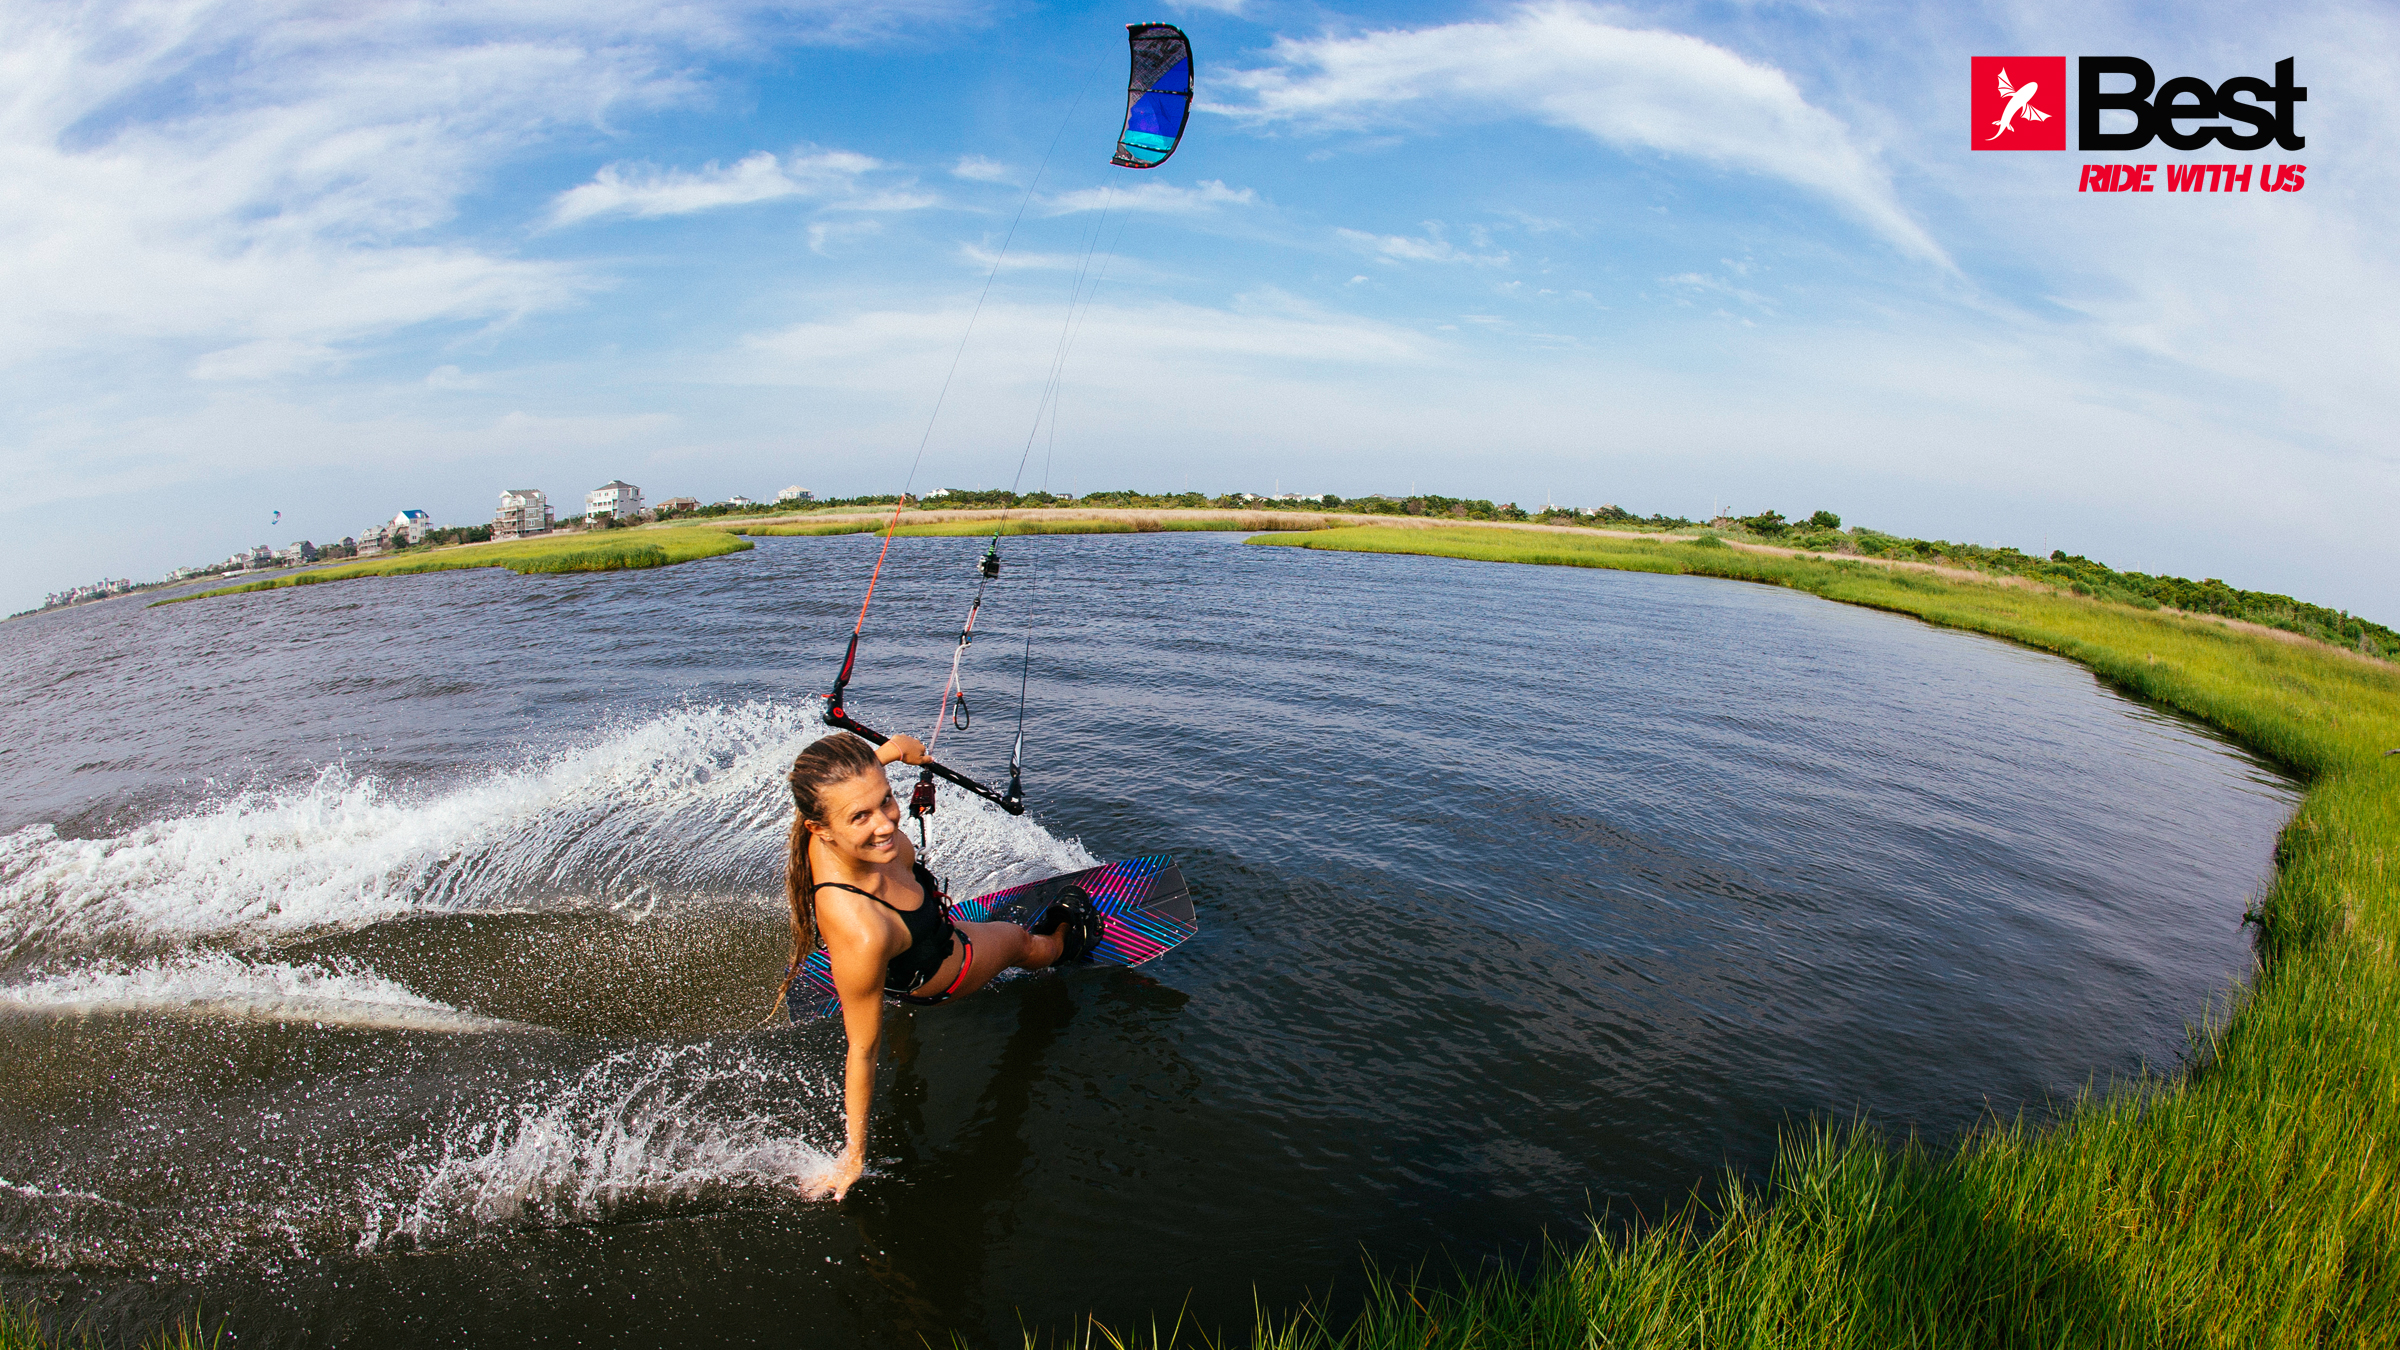 kitesurf wallpaper image - Cruising along the grass with the 2015 Best Kiteboarding TS kite - in resolution: High Definition - HD 16:9 2400 X 1350